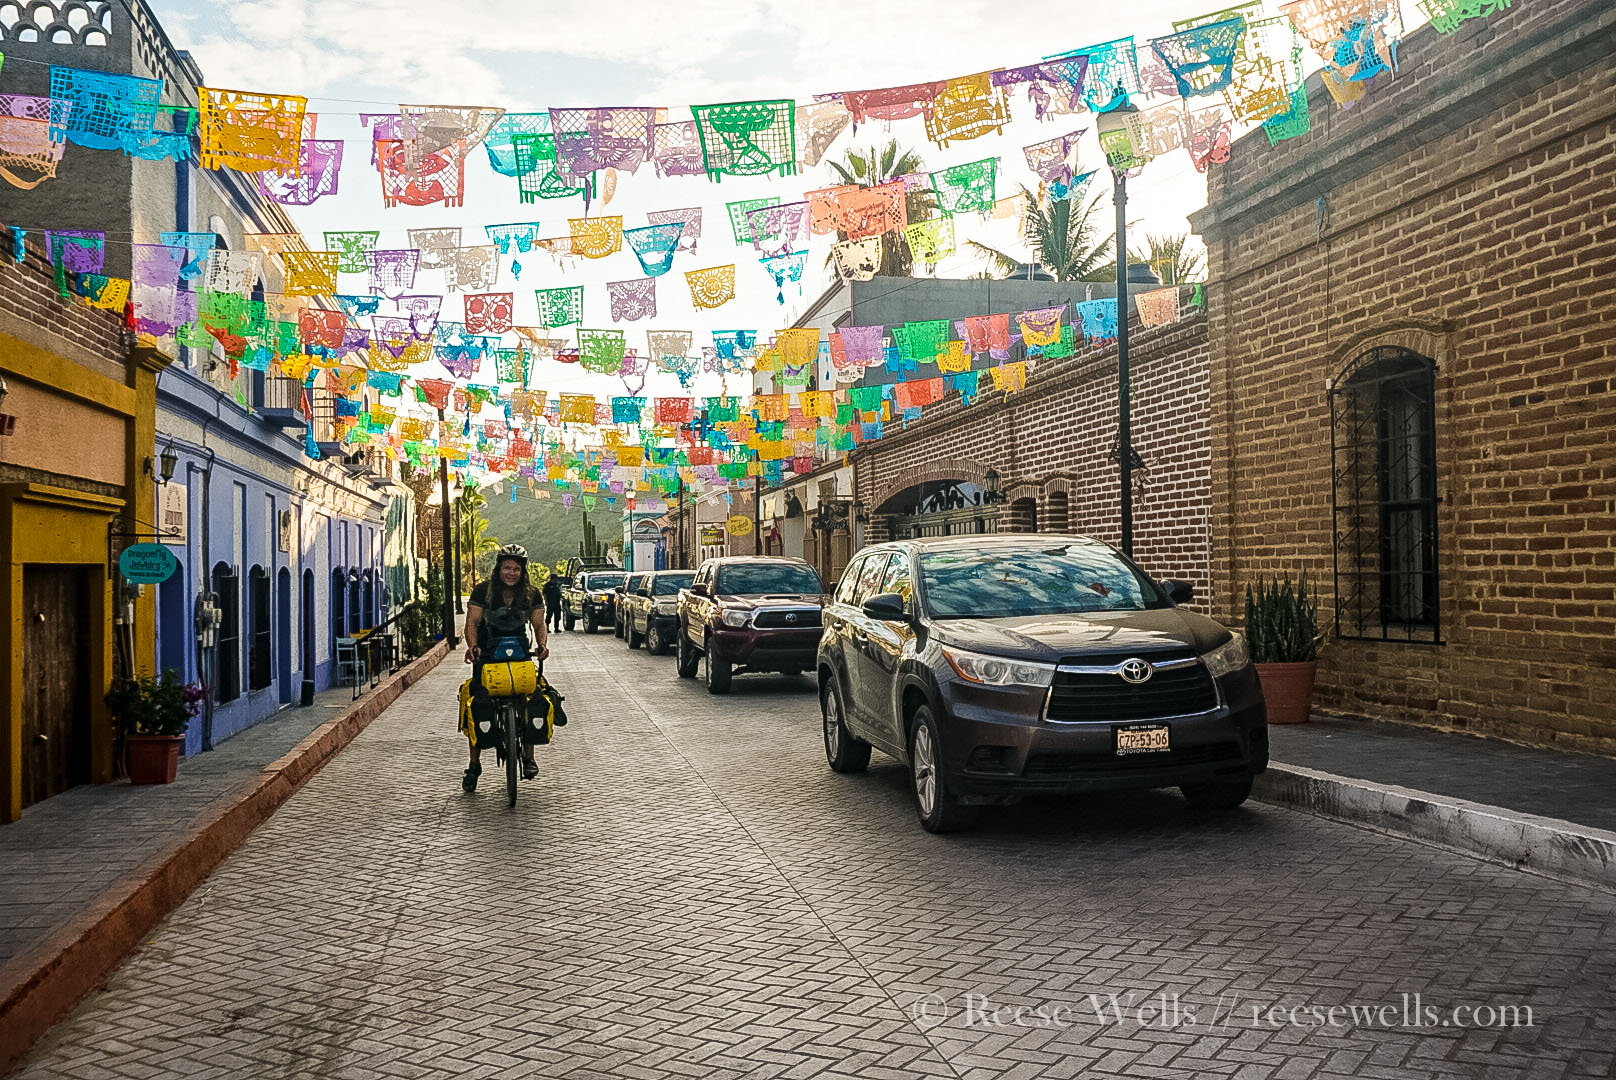 Tyler biking out of Todos Santos. This was one of my favorite streets in town.